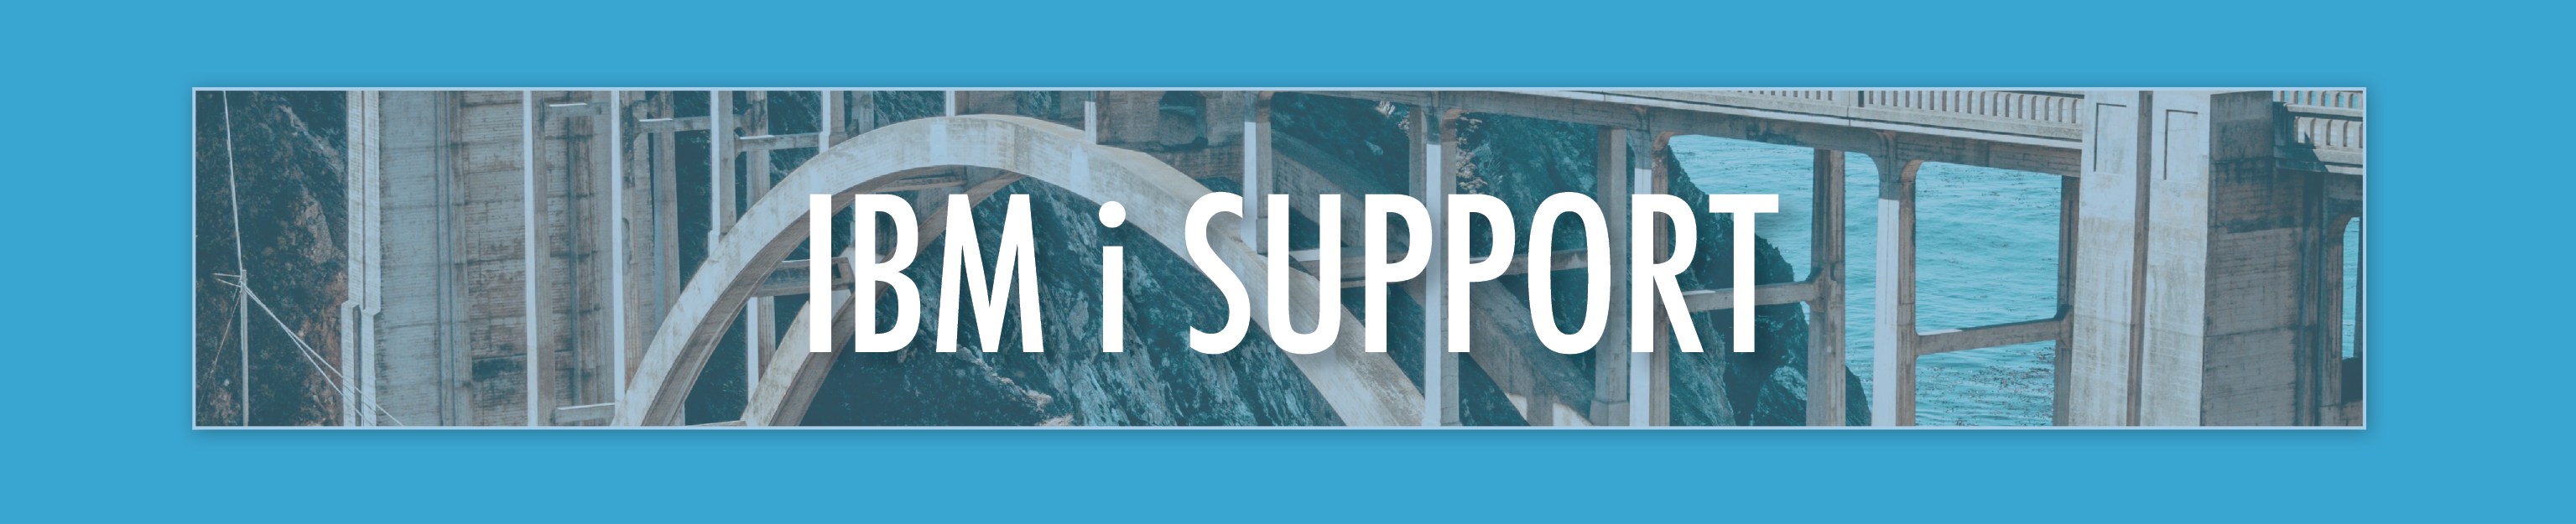 Newsletter_banner_support.png